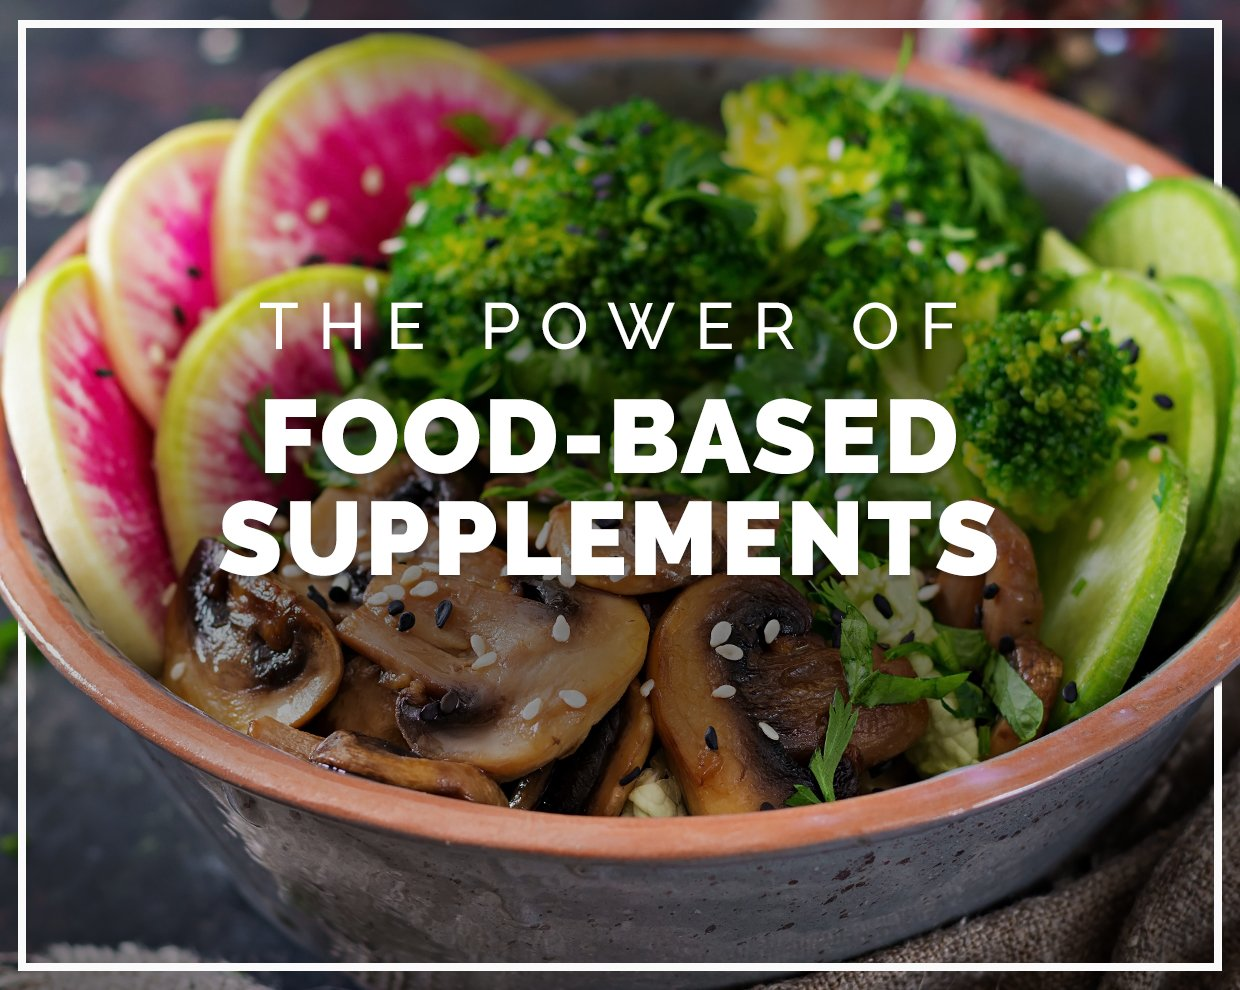 Food-based supplements are better for you. Here's why.